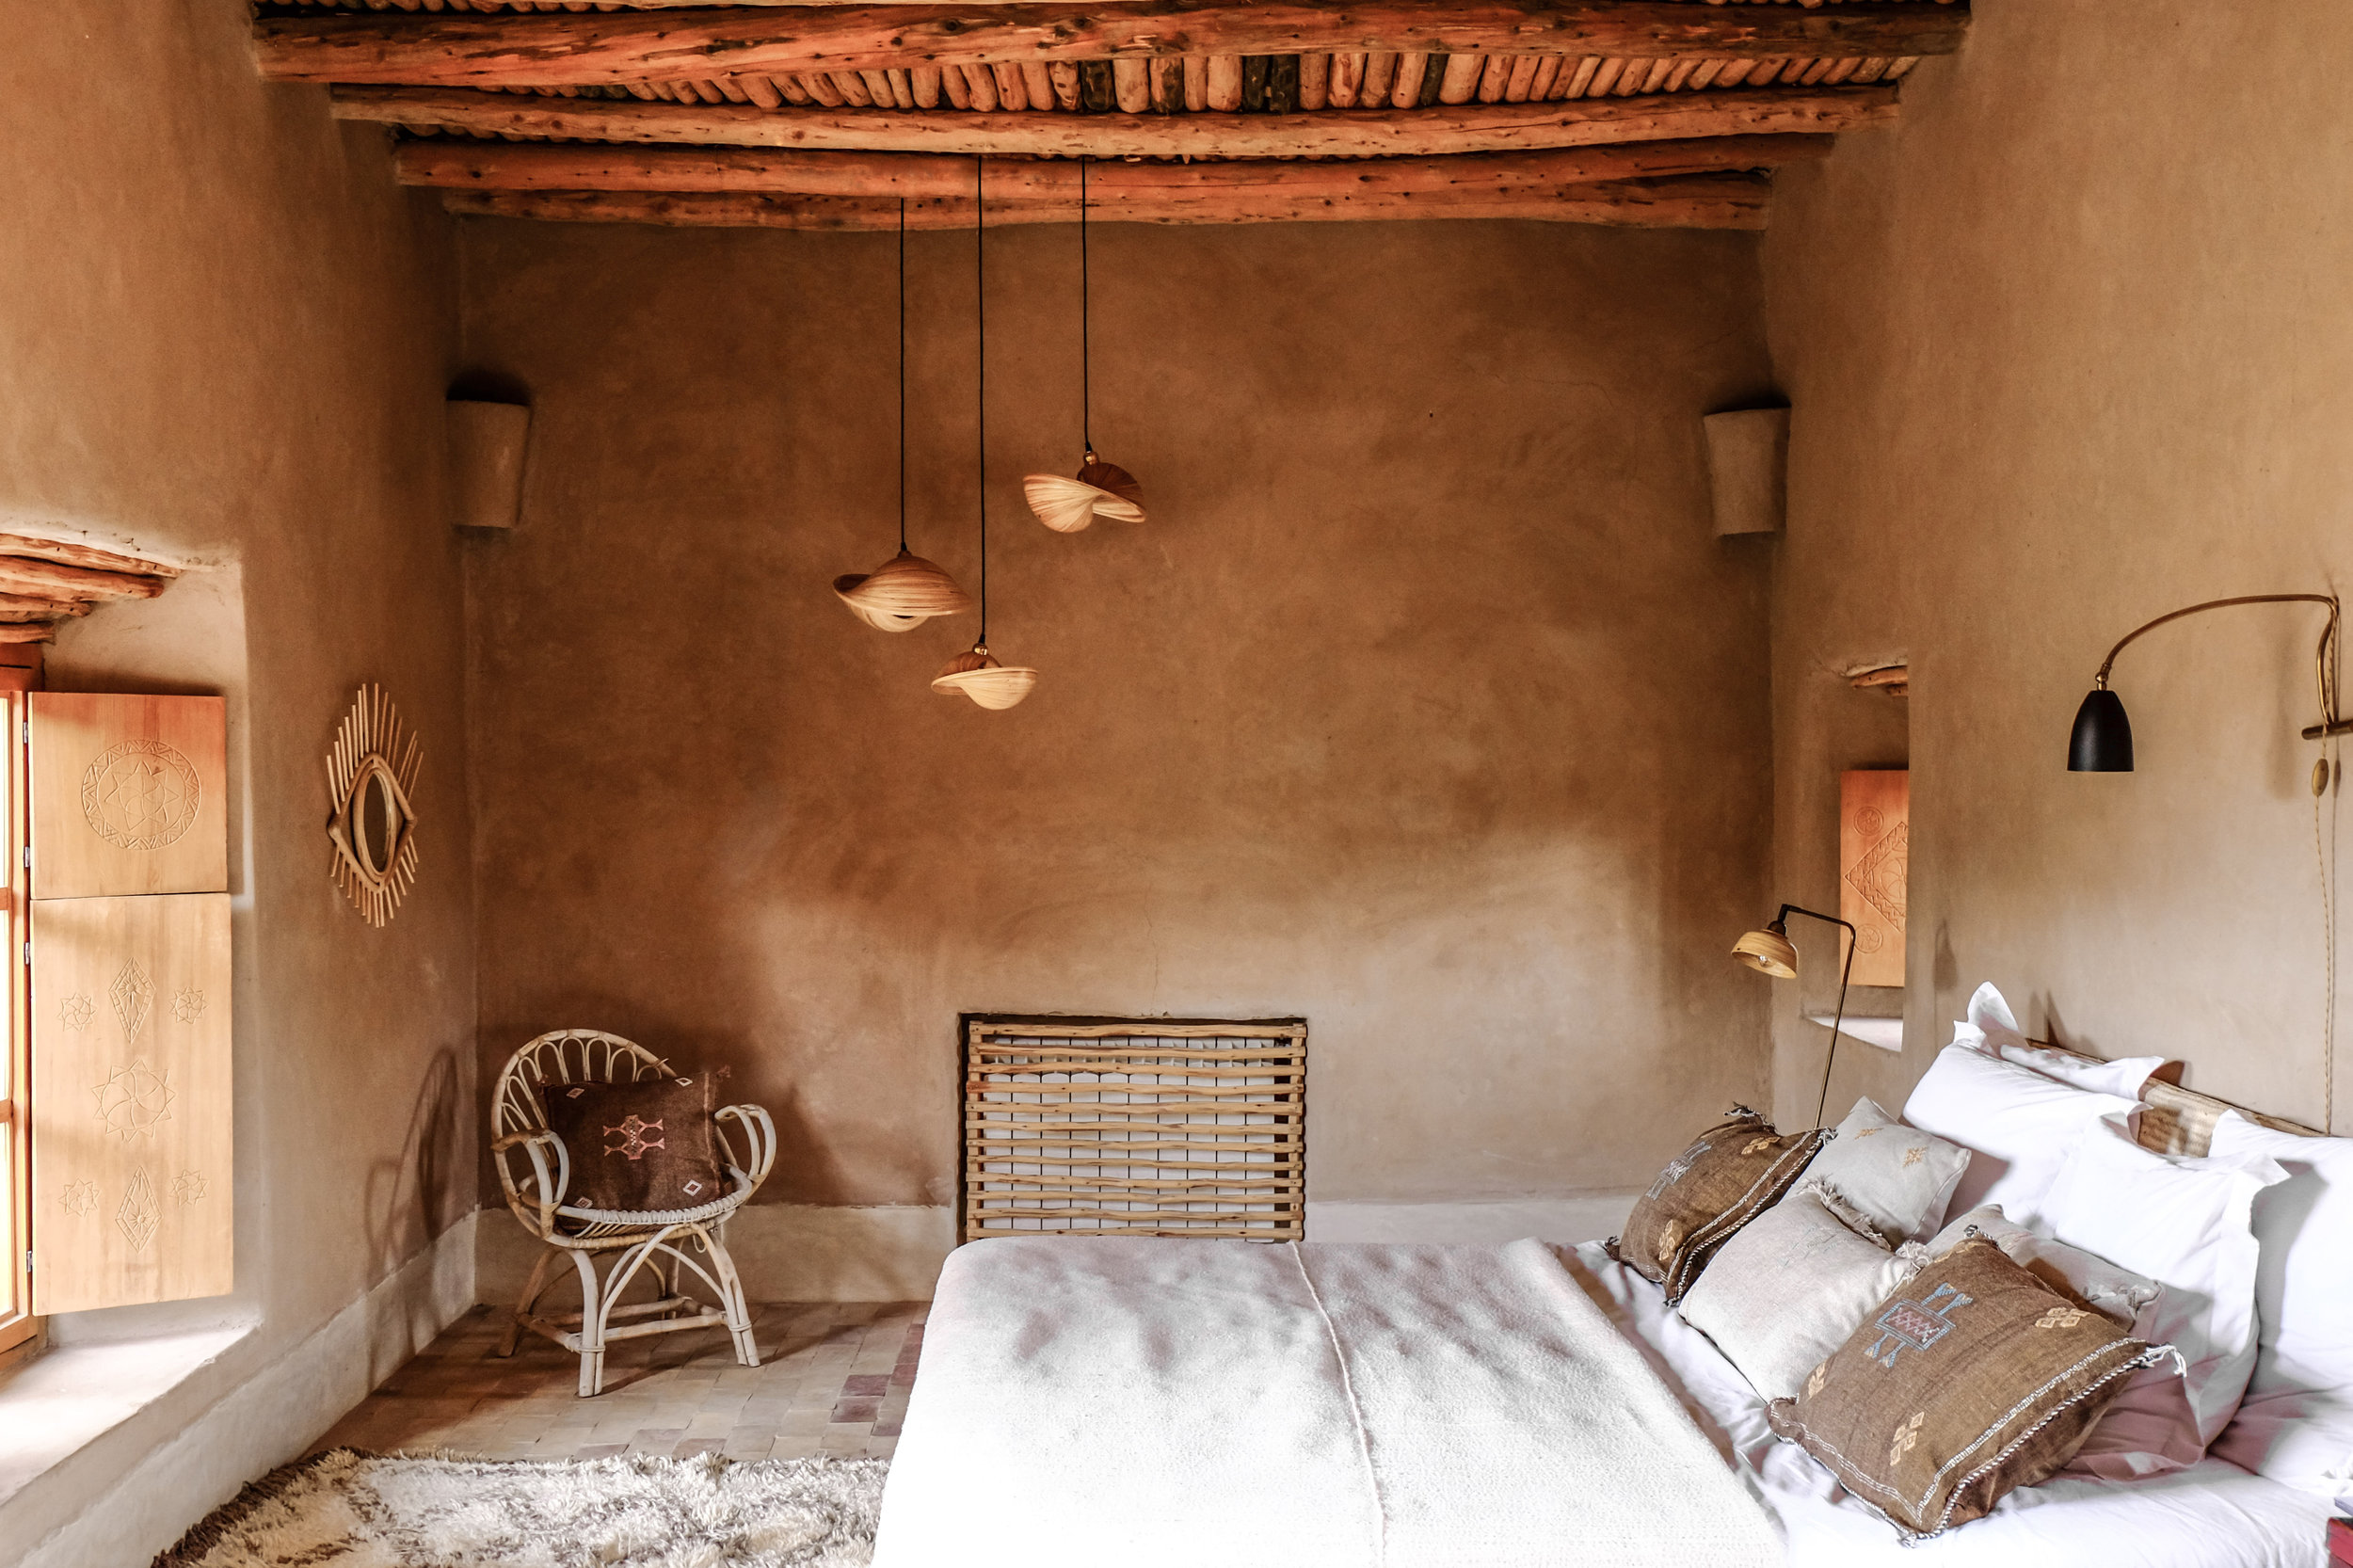 MIRRORS - handmade contemporary rattan and brass mirrors . each mirror is designed by Laith + Leila with quality and care.